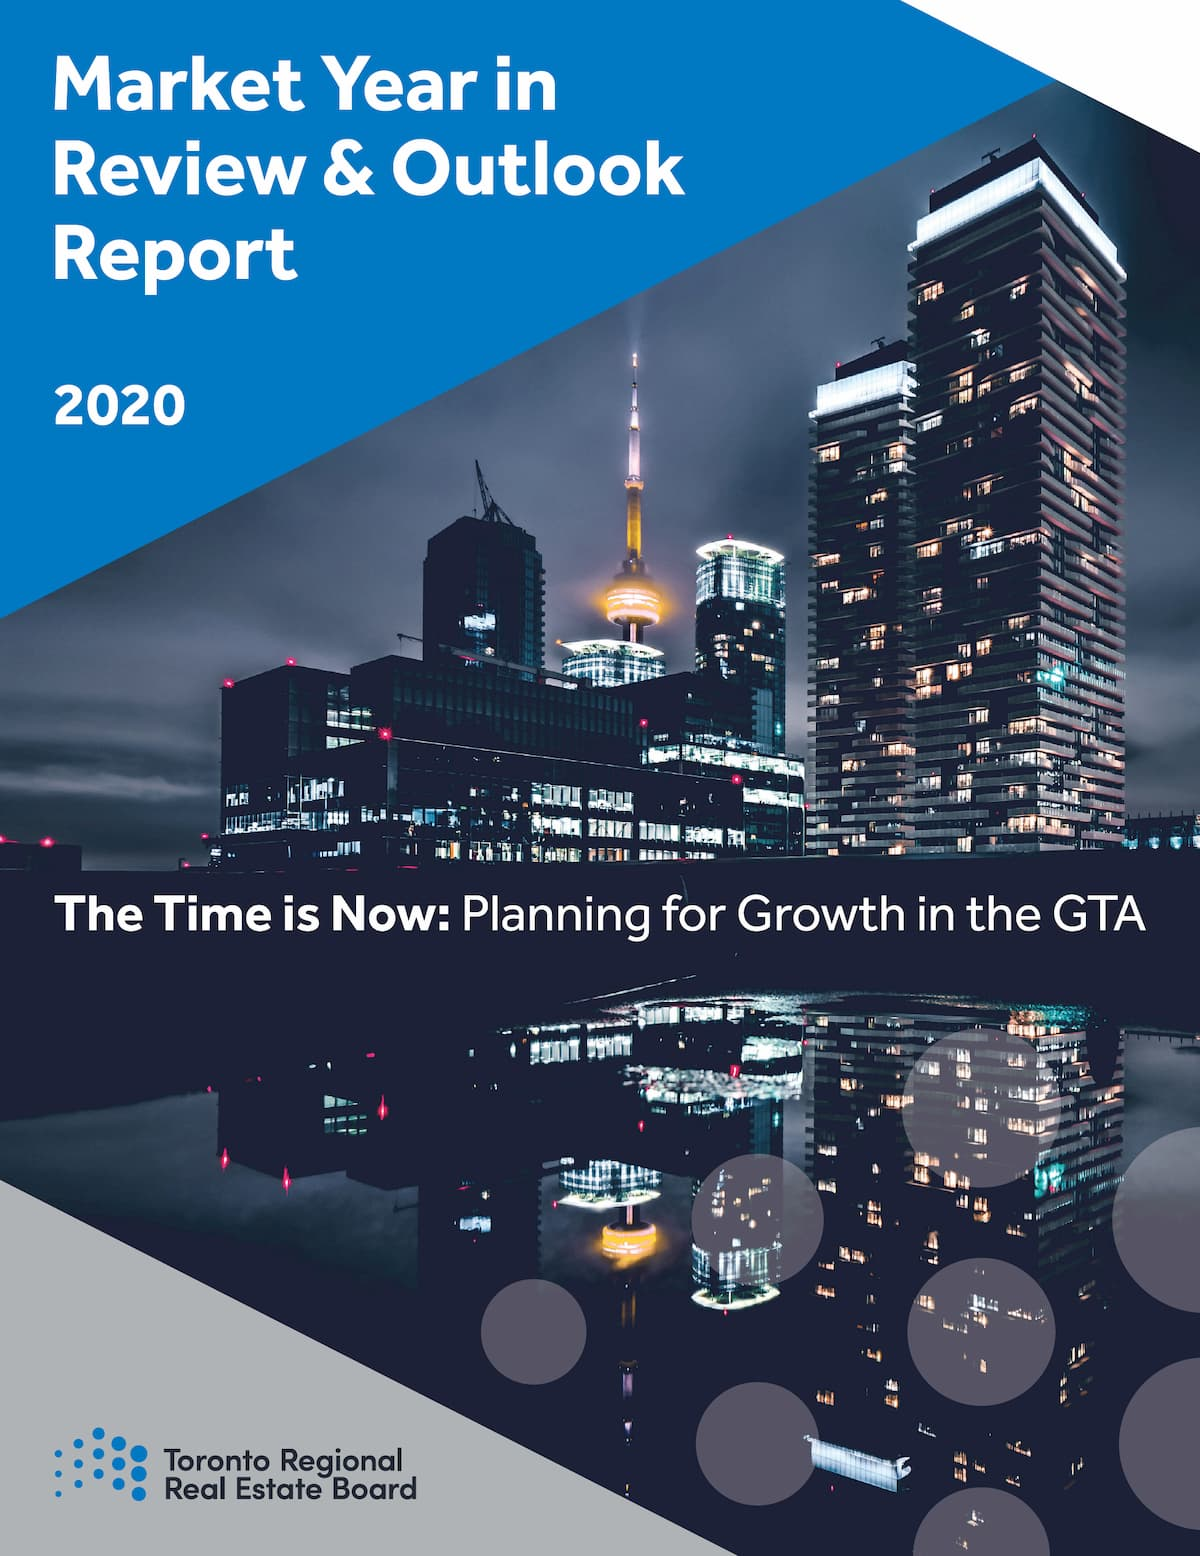 Market Year In Review & Outlook Report 2020 cover.